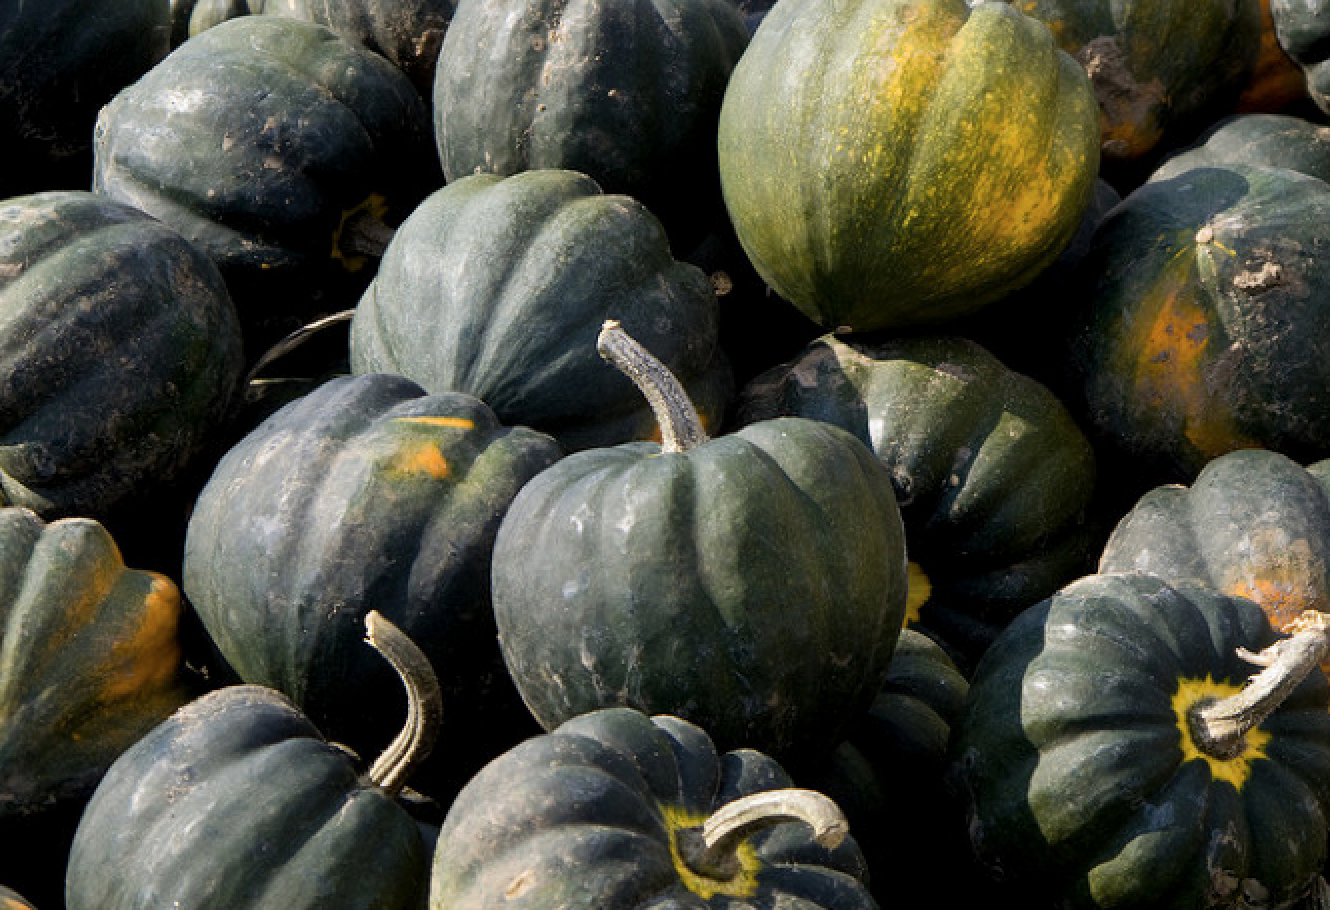 The 2014 drought destroyed 80% of squash harvests in Tonga (Photo: Gary J. Wood/Flickr)